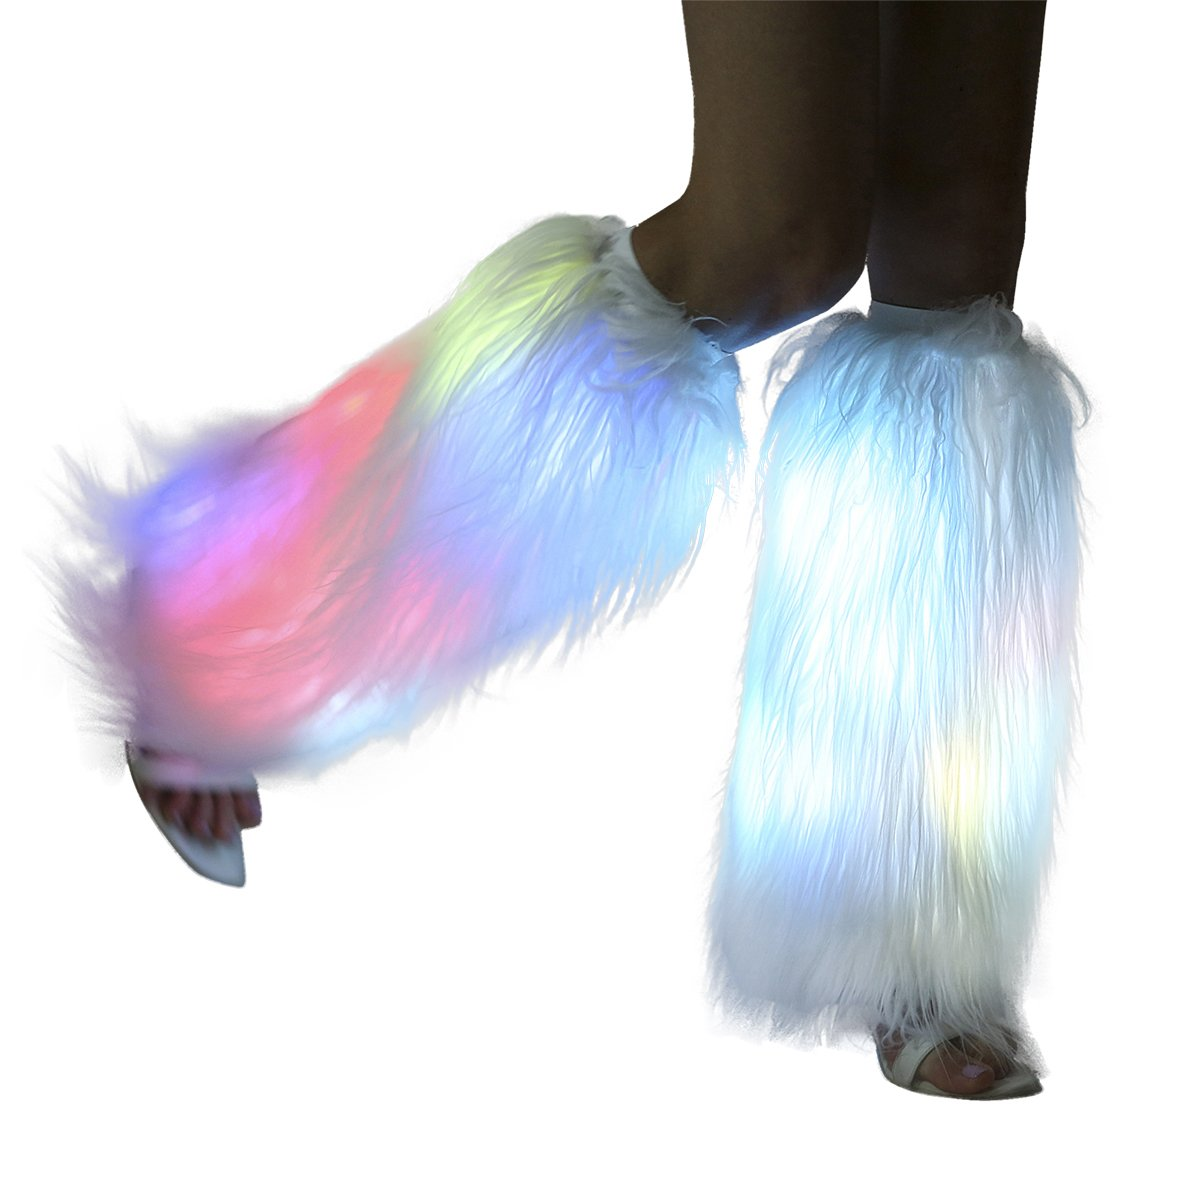 Light Up Faux Fur Led Leg Warmer Glow Rave white Fluffies Rainbow Flashing Sparkly Dance Hosiery Festival N6-HDTR-VC7T